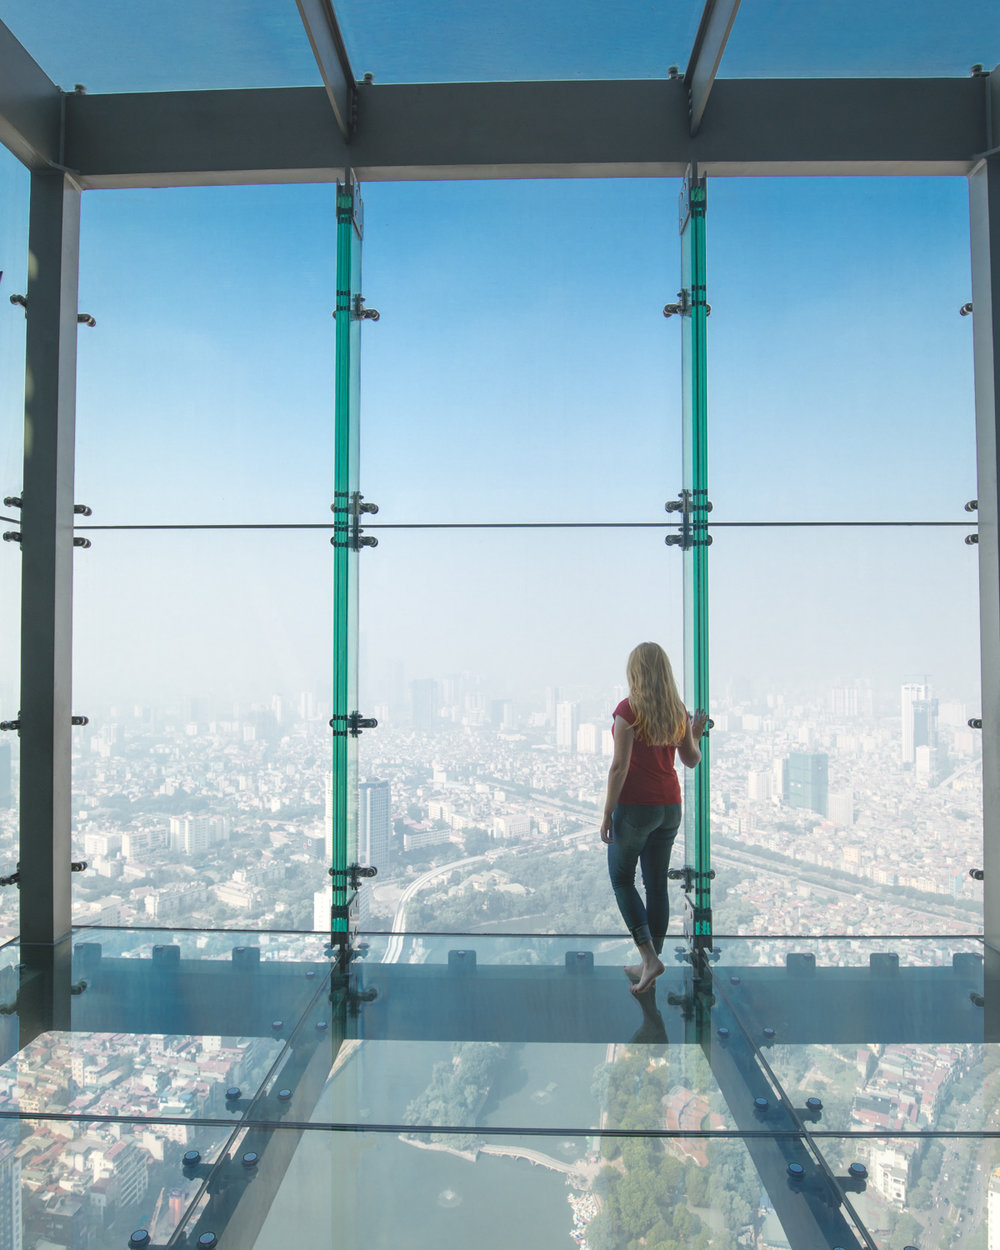 The views from the Lotte Tower